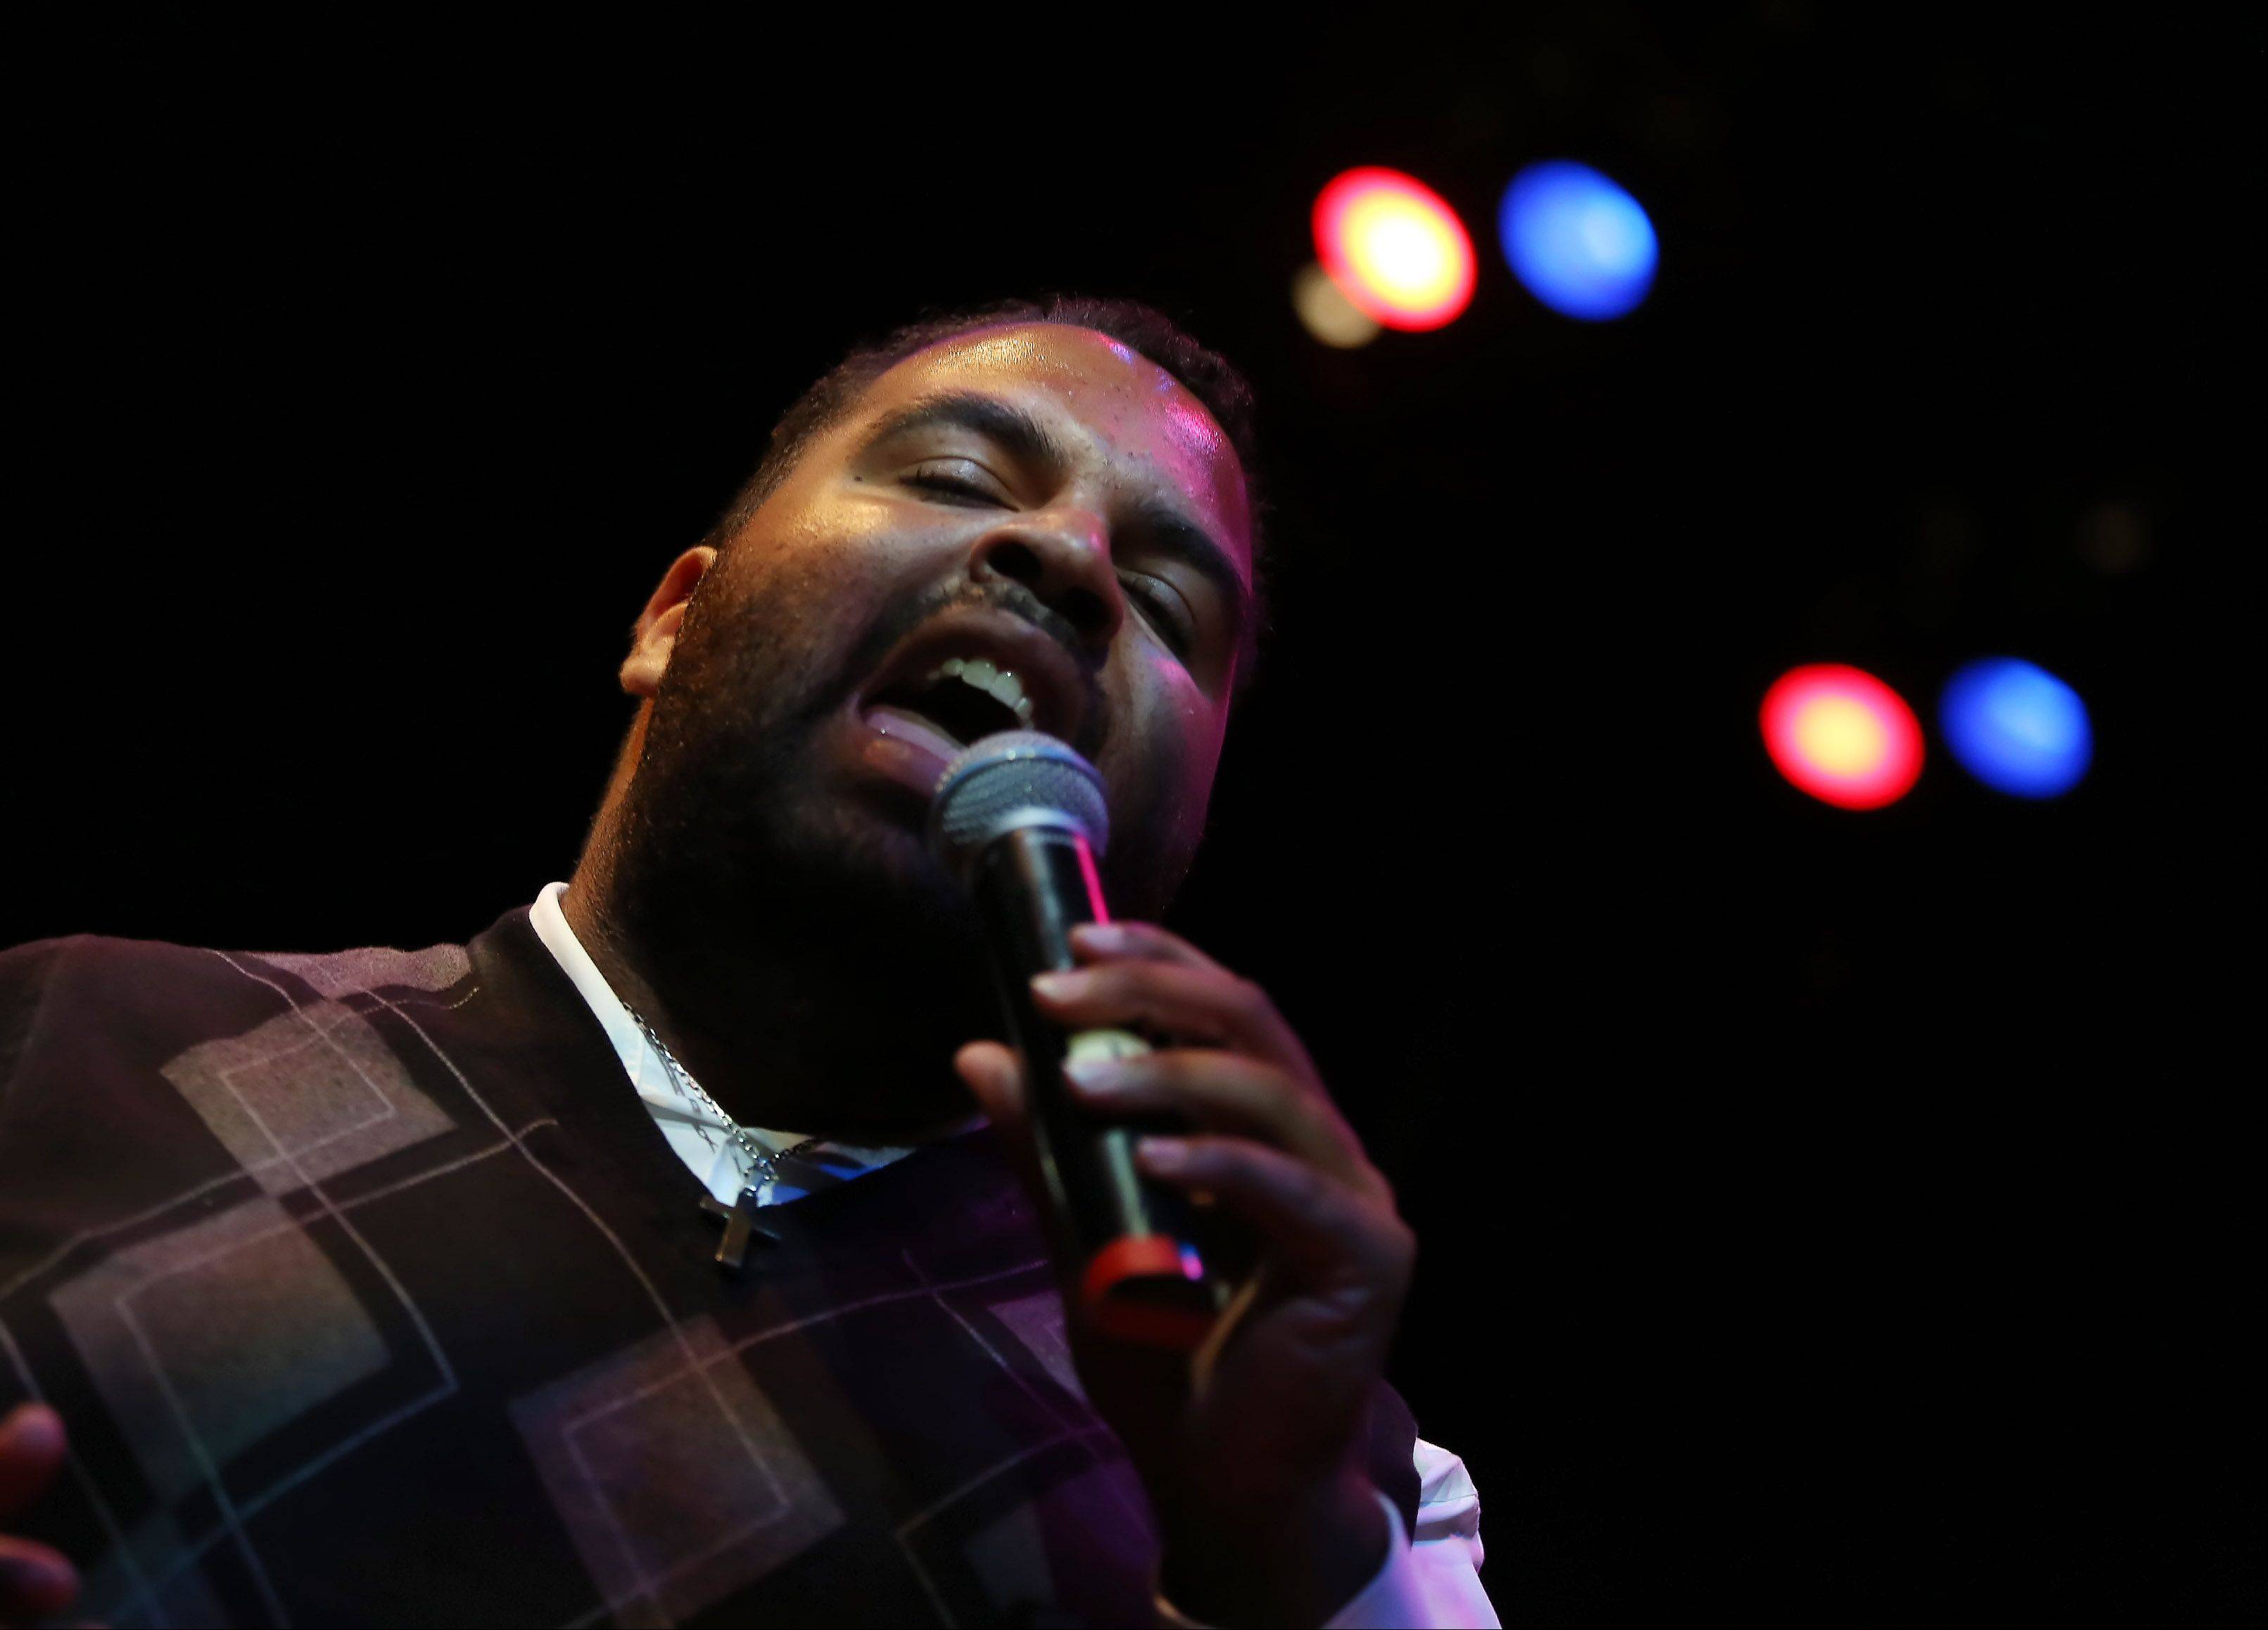 Andrew Johnston of Bourbonnais sings during Suburban Chicago's Got Talent competition Sunday night at the Metropolis Performing Arts Centre in Arlington Heights. The summer long talent contest is presented by the Daily Herald and sponsored by the Arlington Heights Chamber of Commerce.